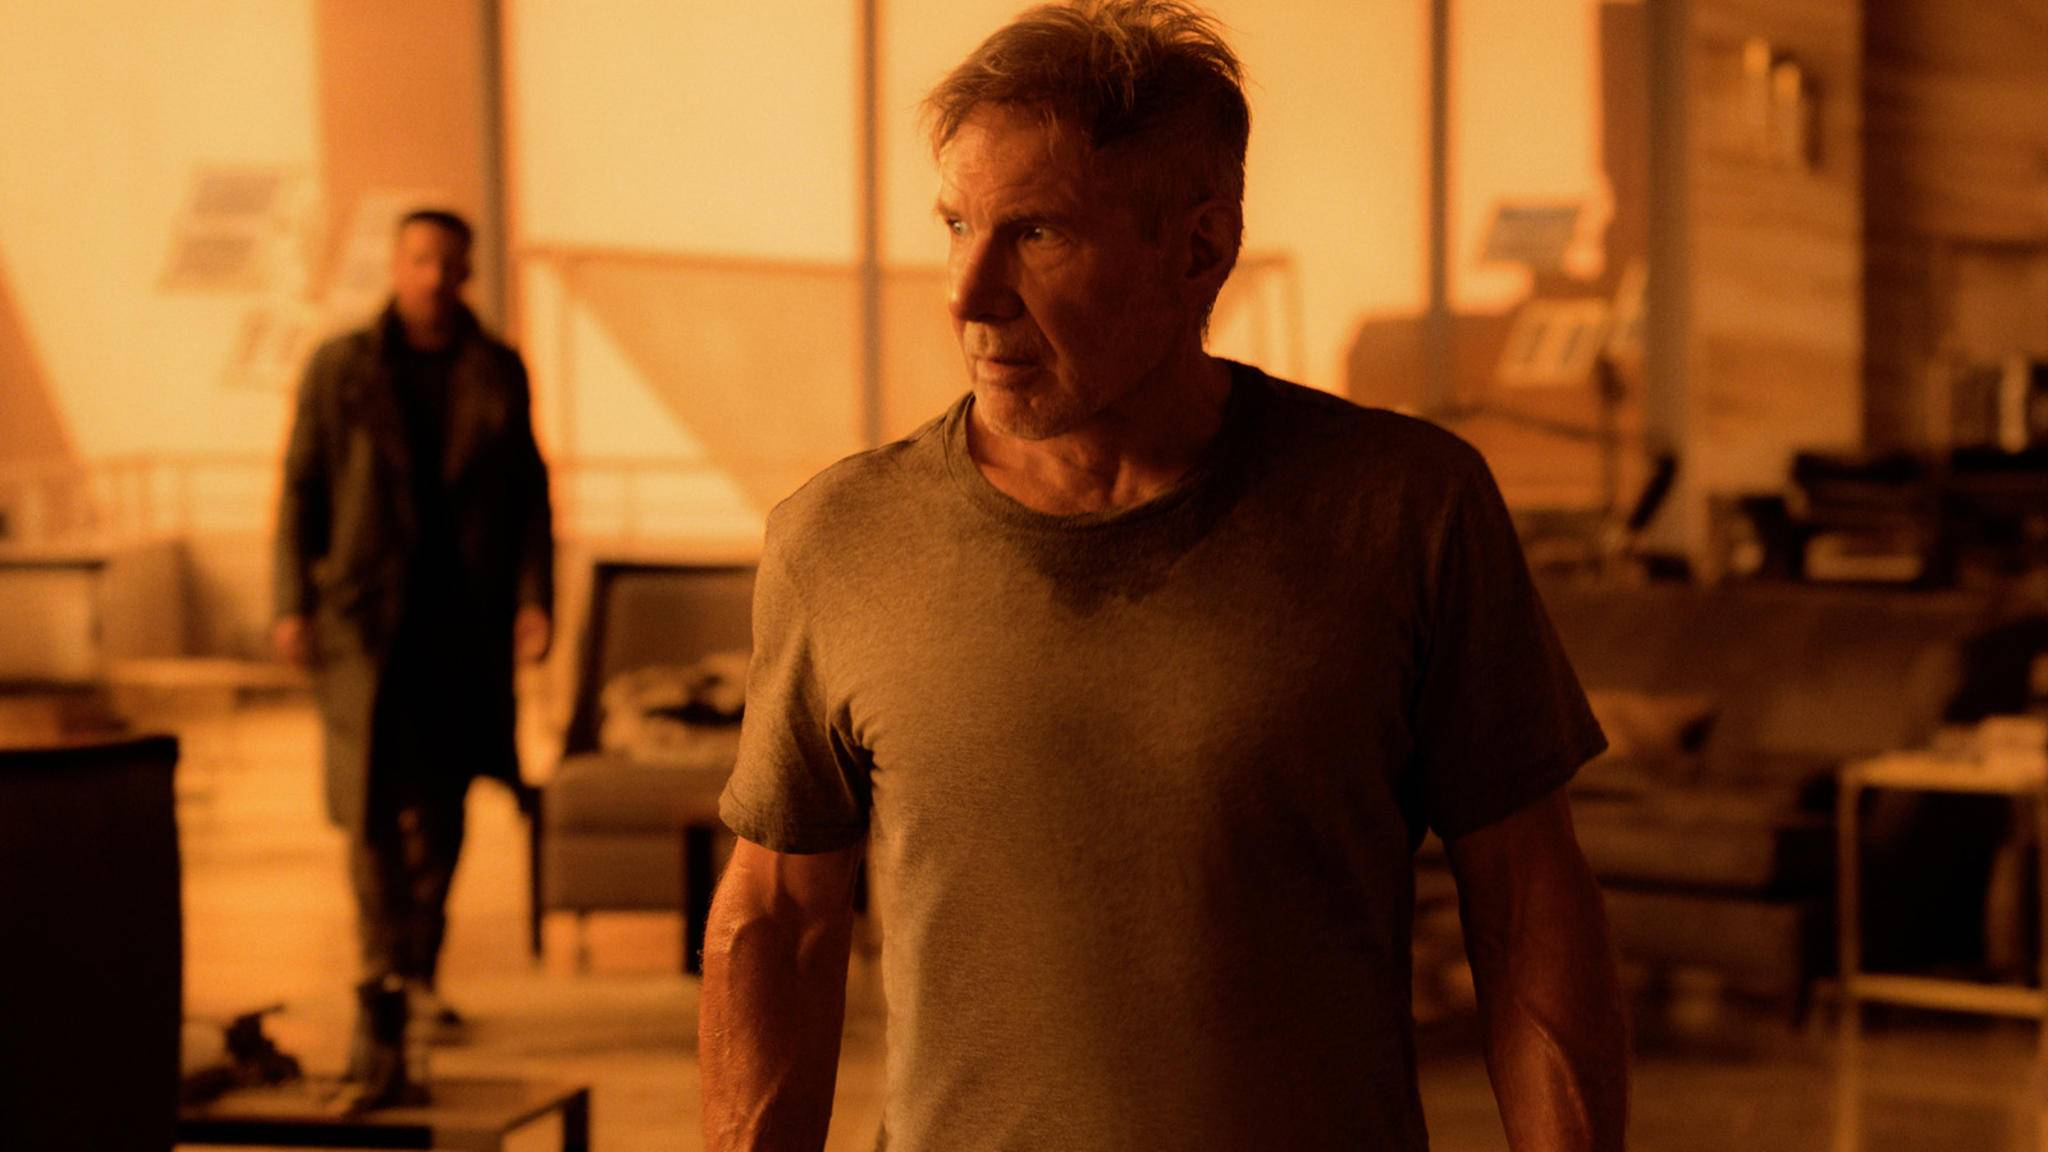 Blade Runner 2049-Sony Pictures Releasing GmbH-TRI-12529r7_org